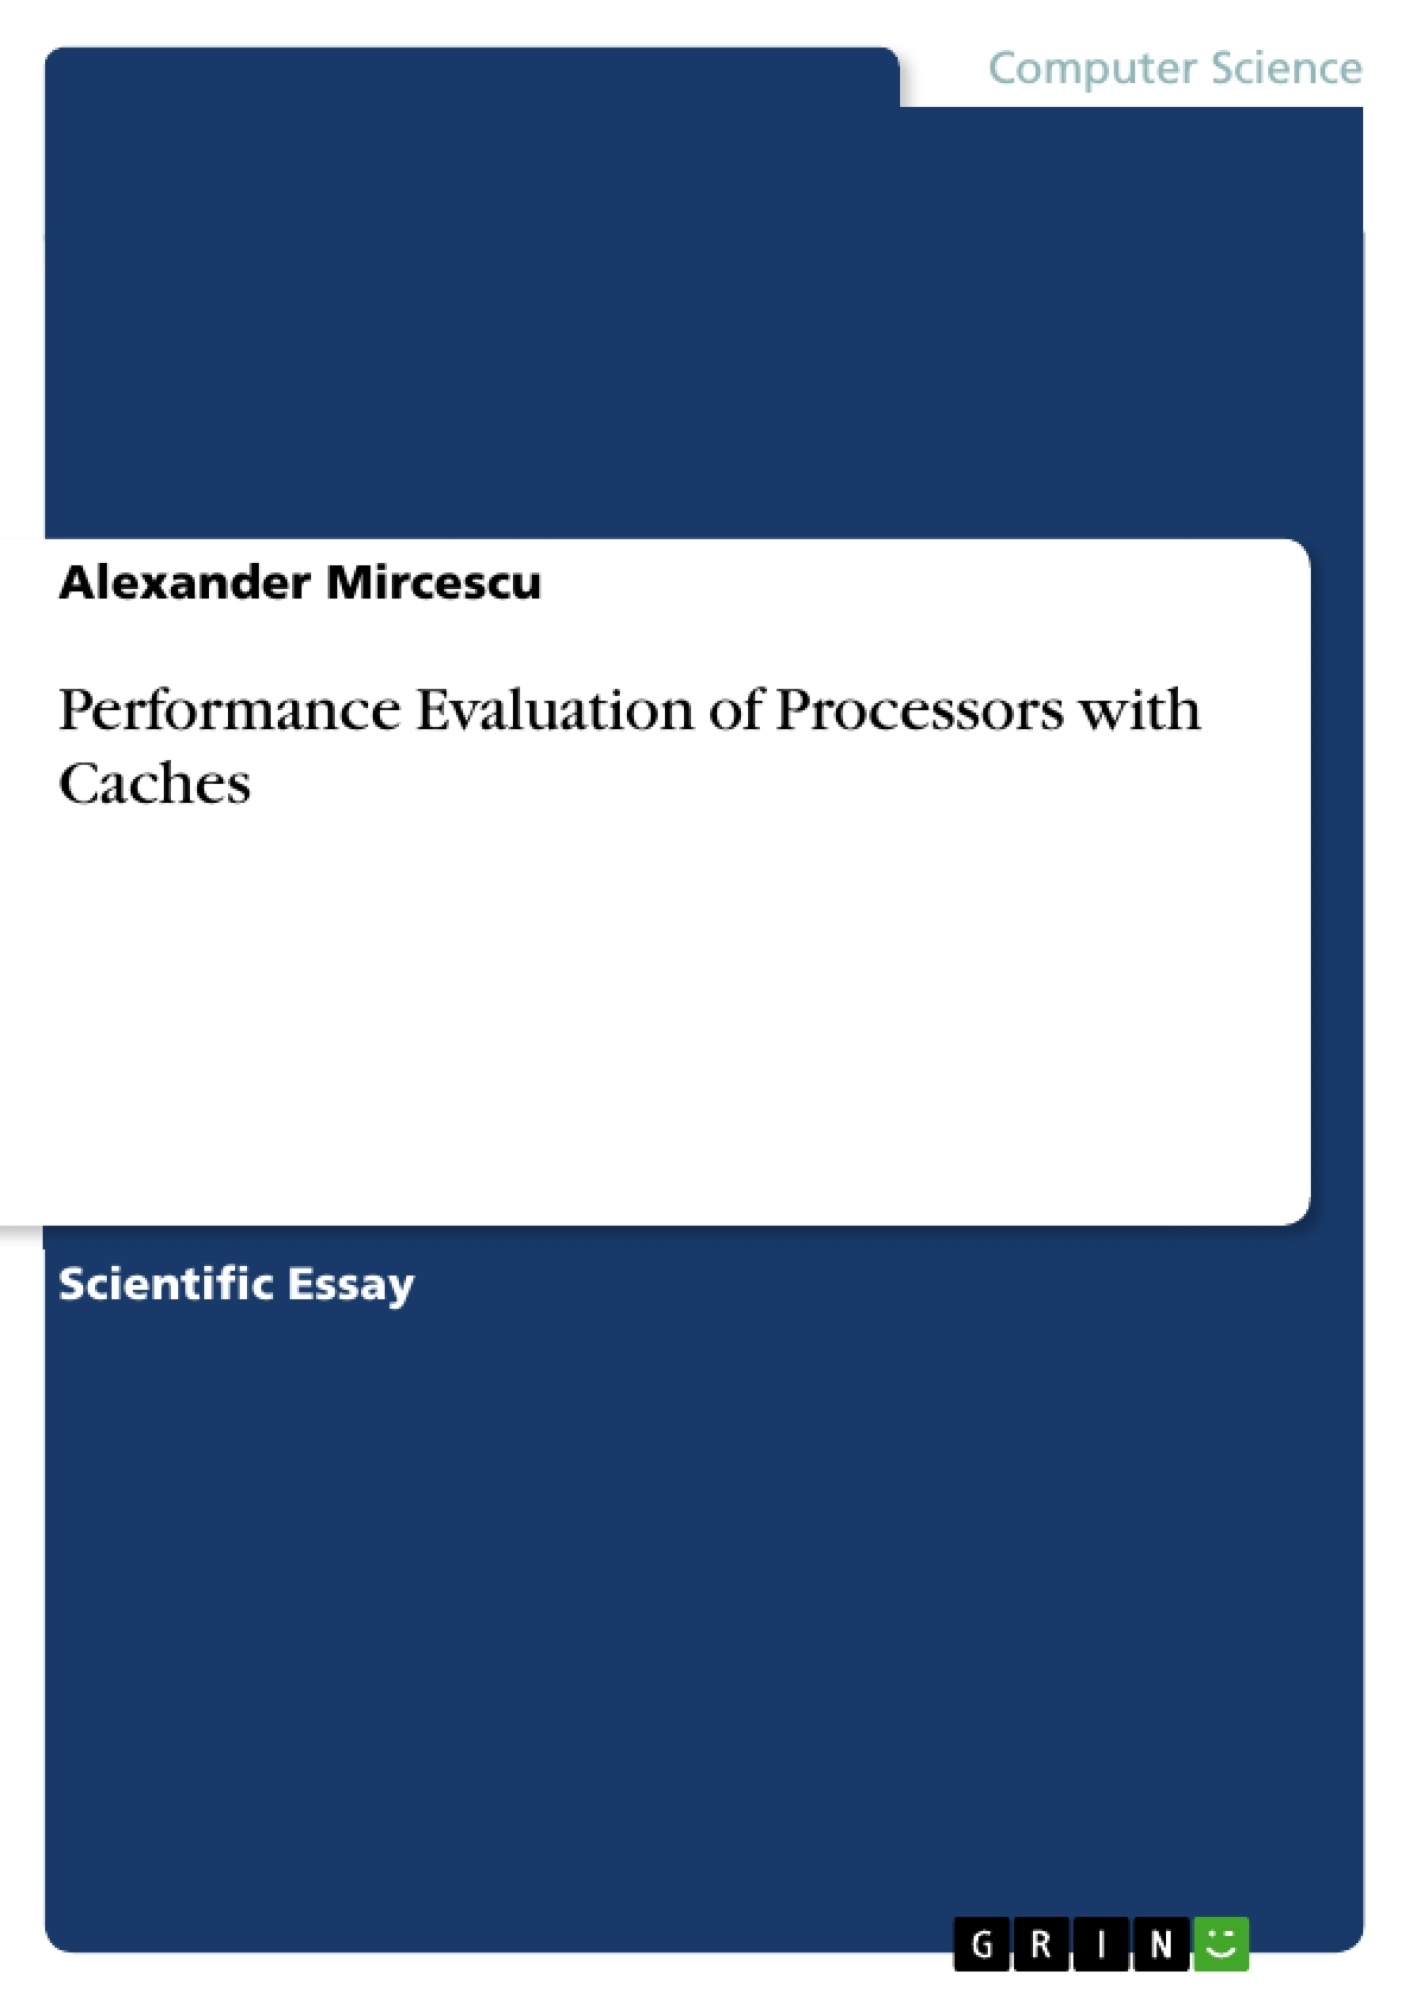 Title: Performance Evaluation of Processors with Caches